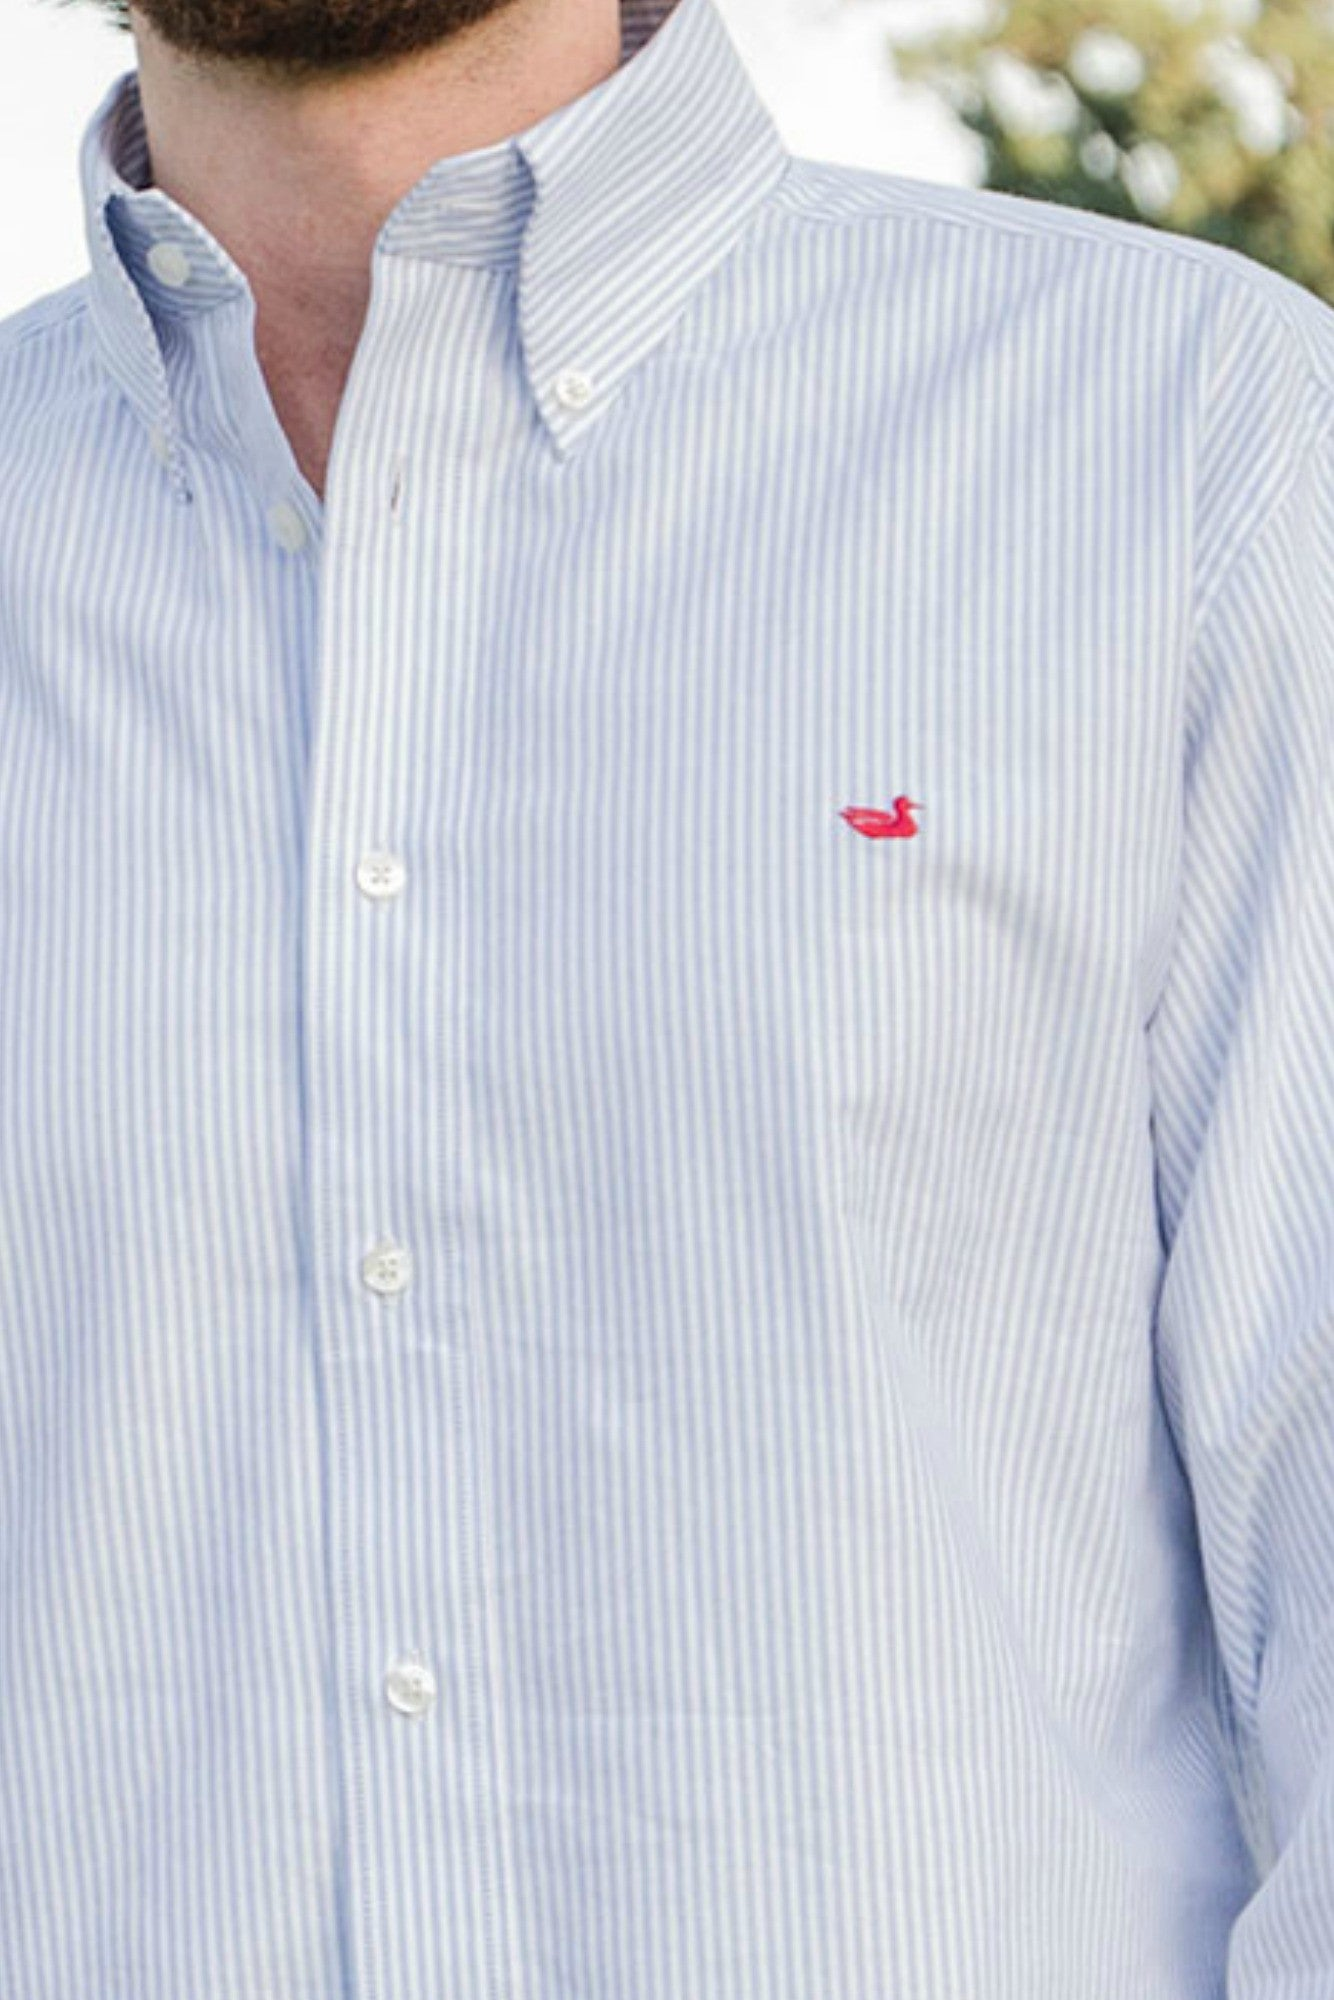 Southern Marsh: Striped Pintail Oxford Dress Shirt, Blue